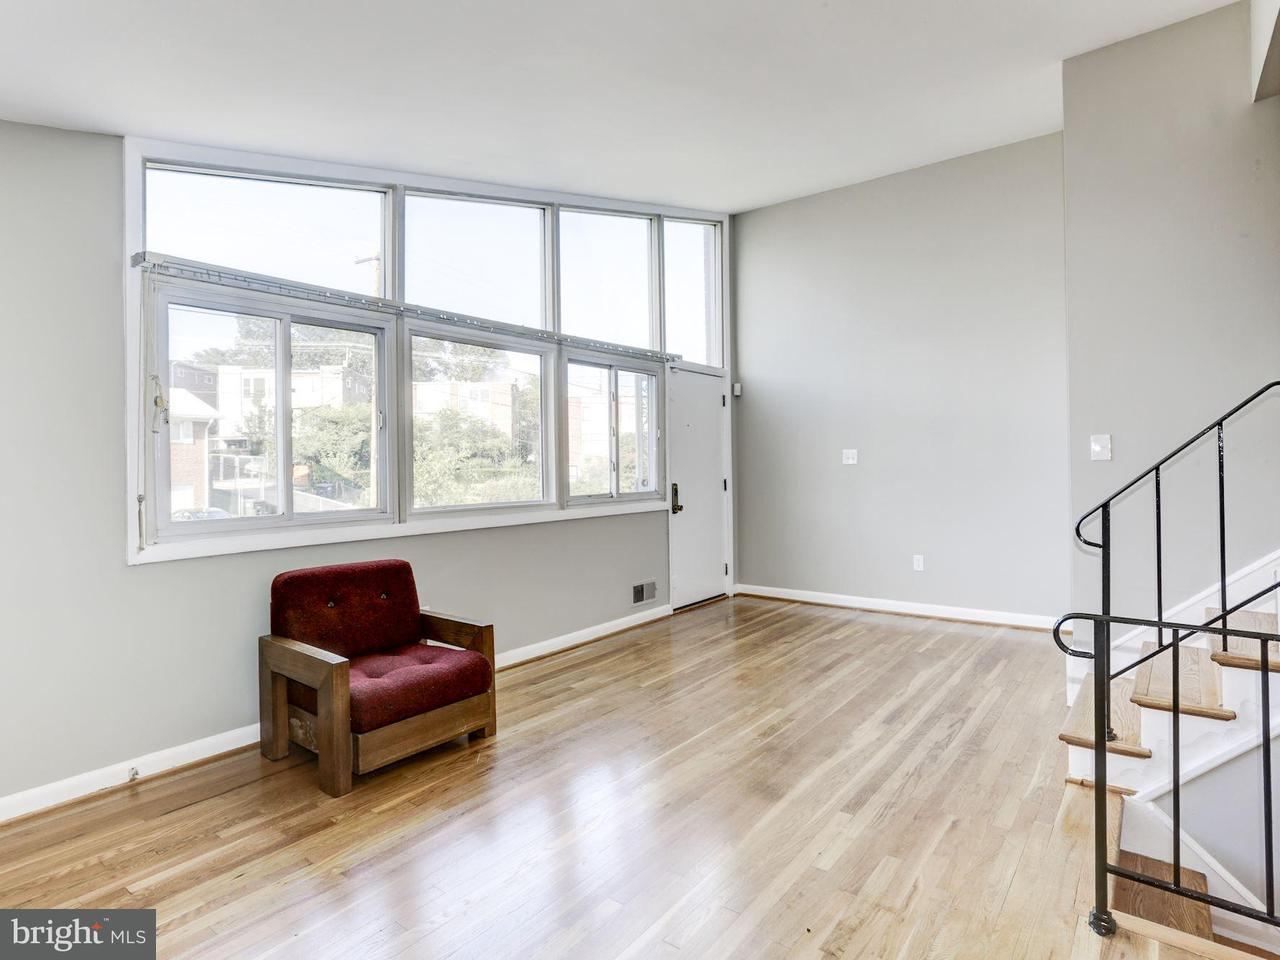 Additional photo for property listing at 823 KENNEDY ST NE 823 KENNEDY ST NE Washington, District Of Columbia 20011 United States